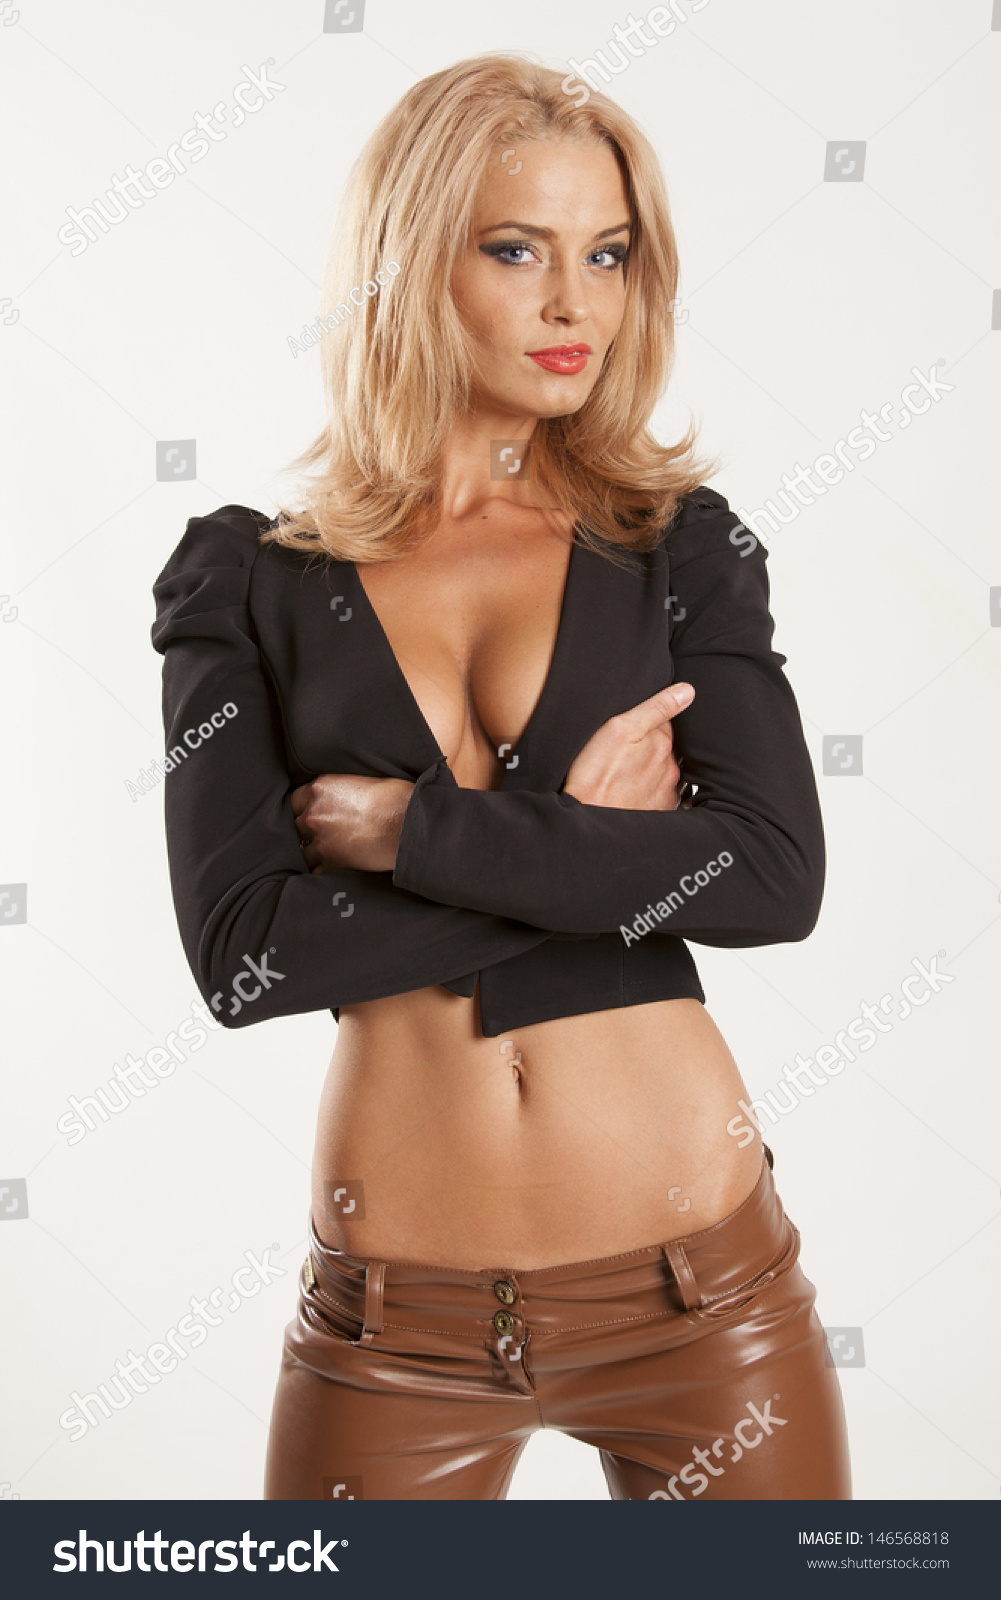 Hot Leather Clad Blonde Teen 108